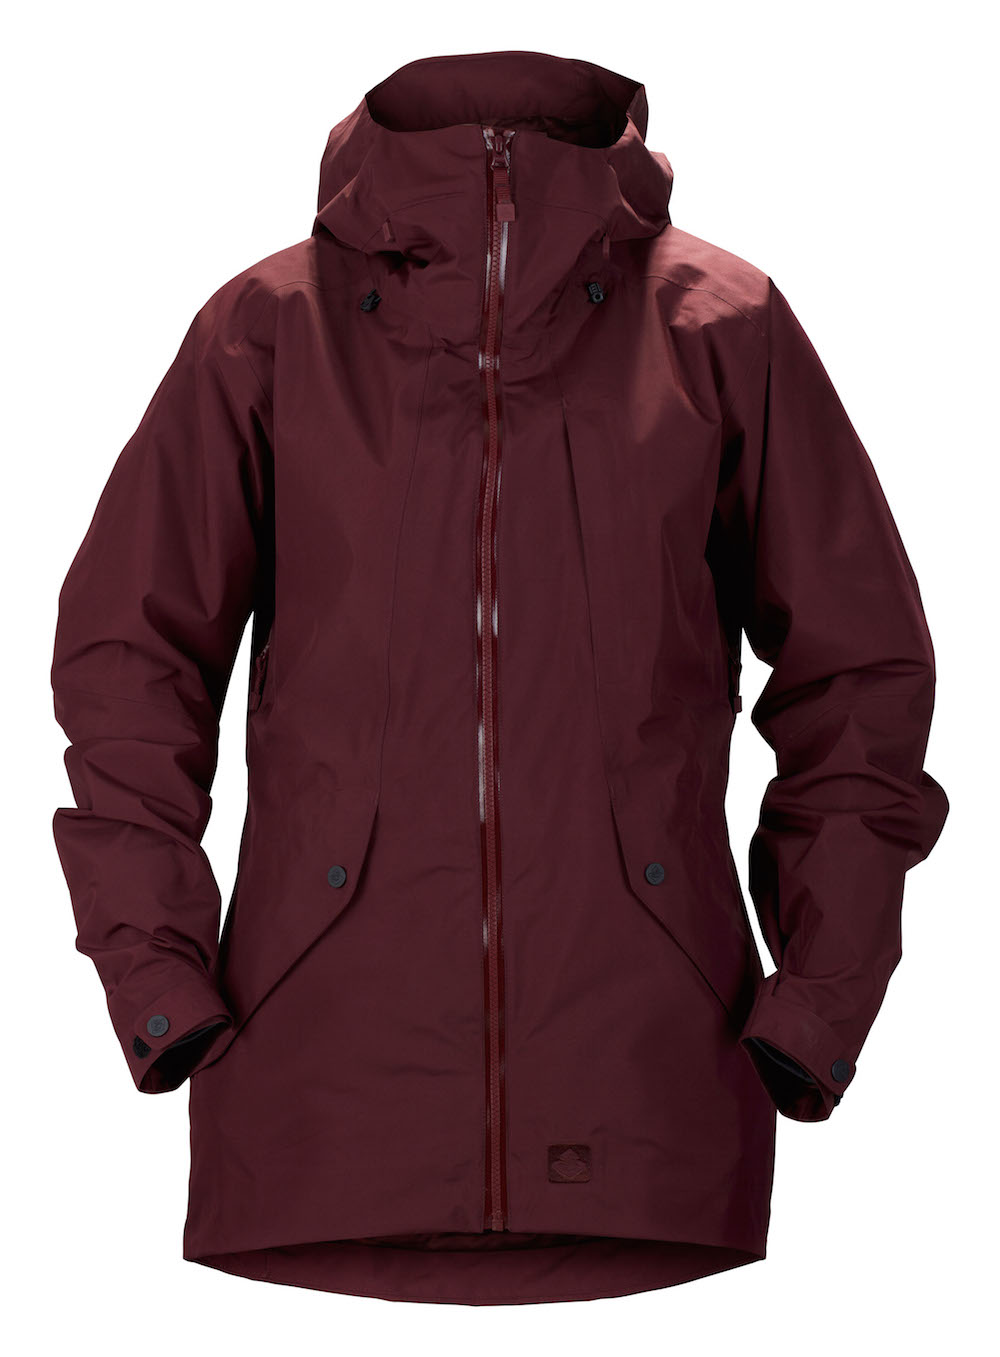 Die Sweet Protection Chiquitita Jacket in der Farbe Ron Red